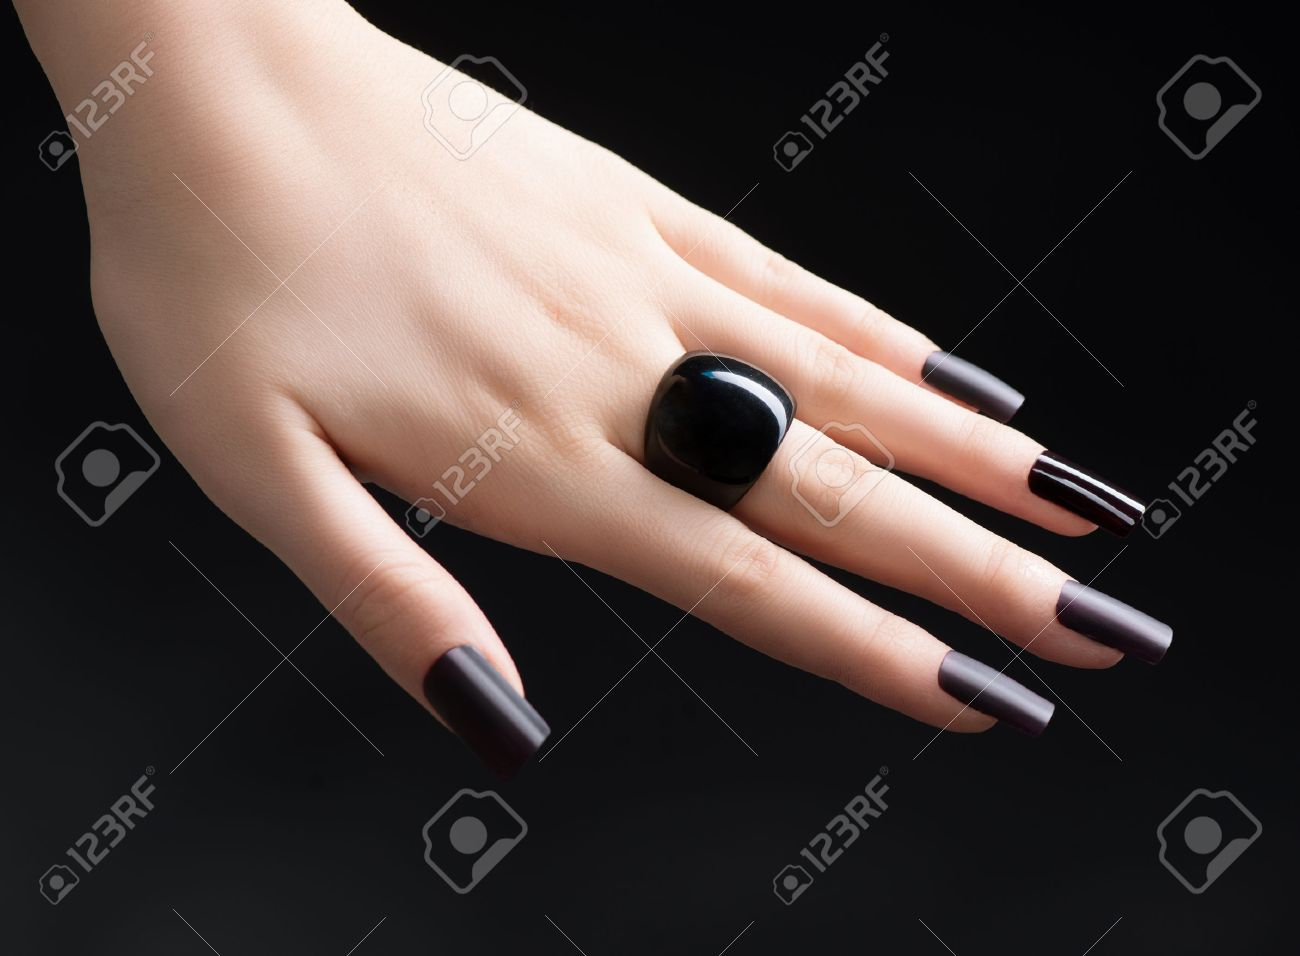 Manicured Nail With Black Matte Nail Polish Fashion Manicure Stock